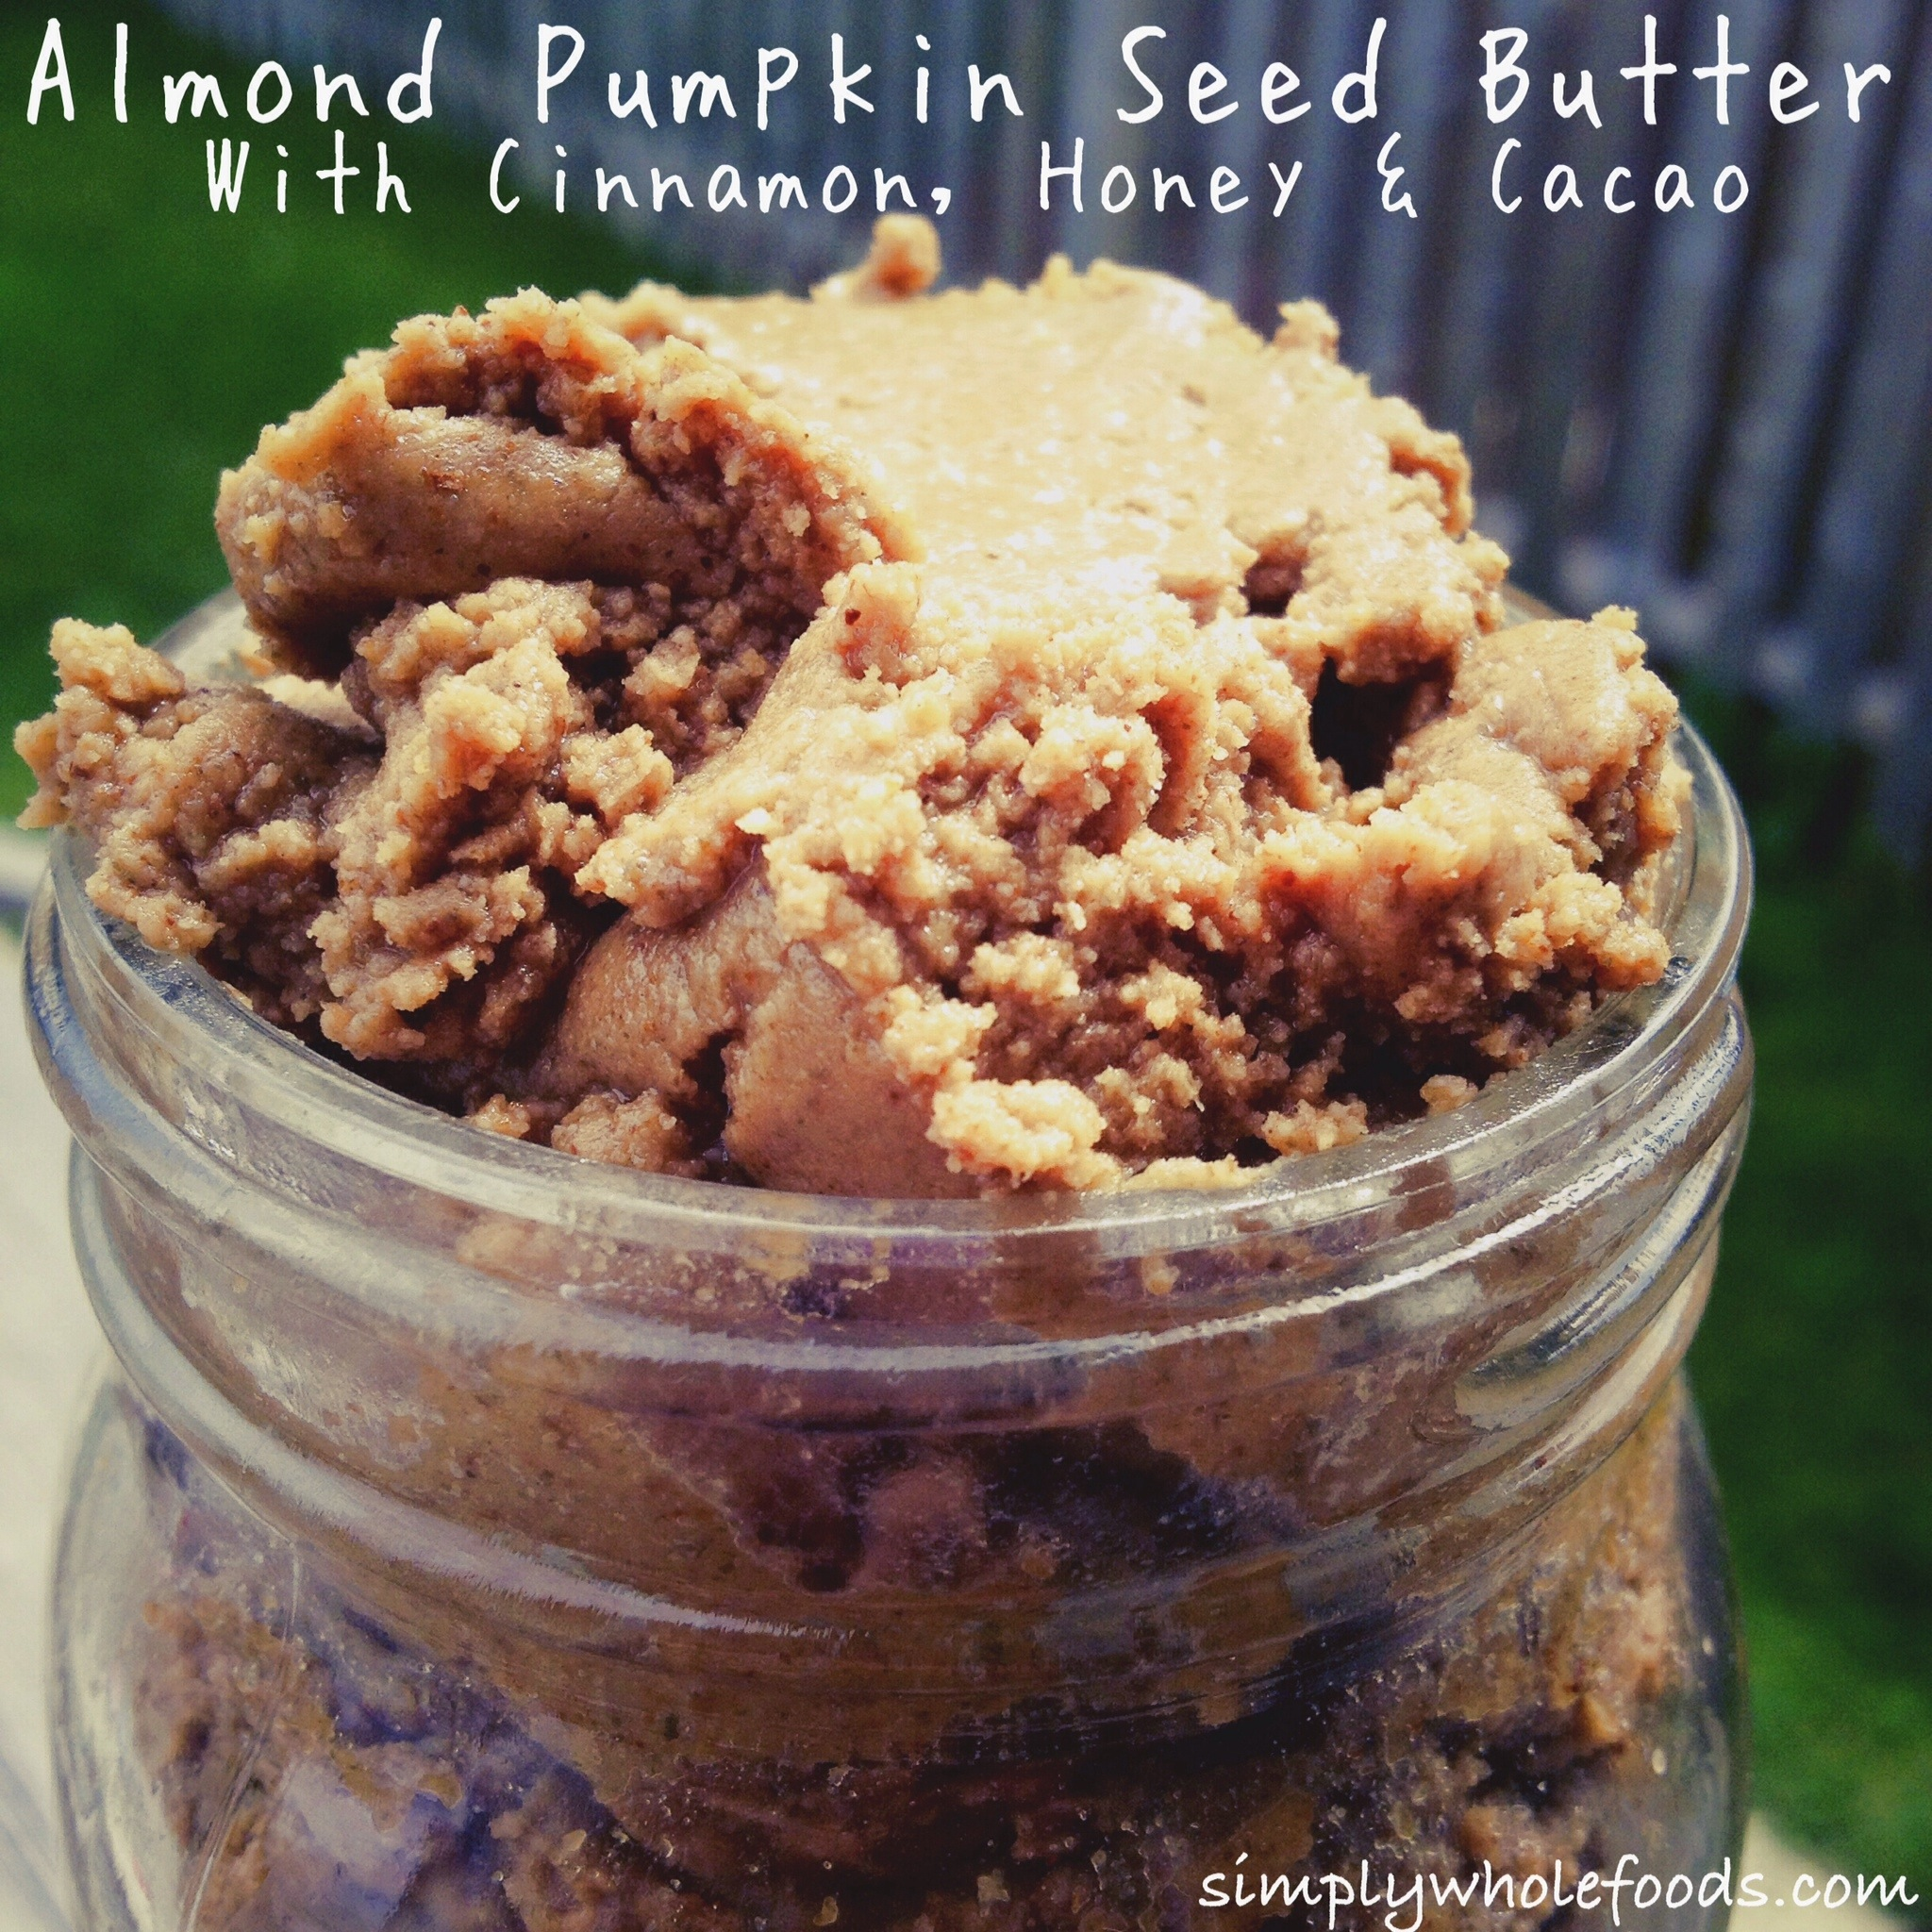 Whenever I make homemade nut butter, I can't stop myself from eating ...